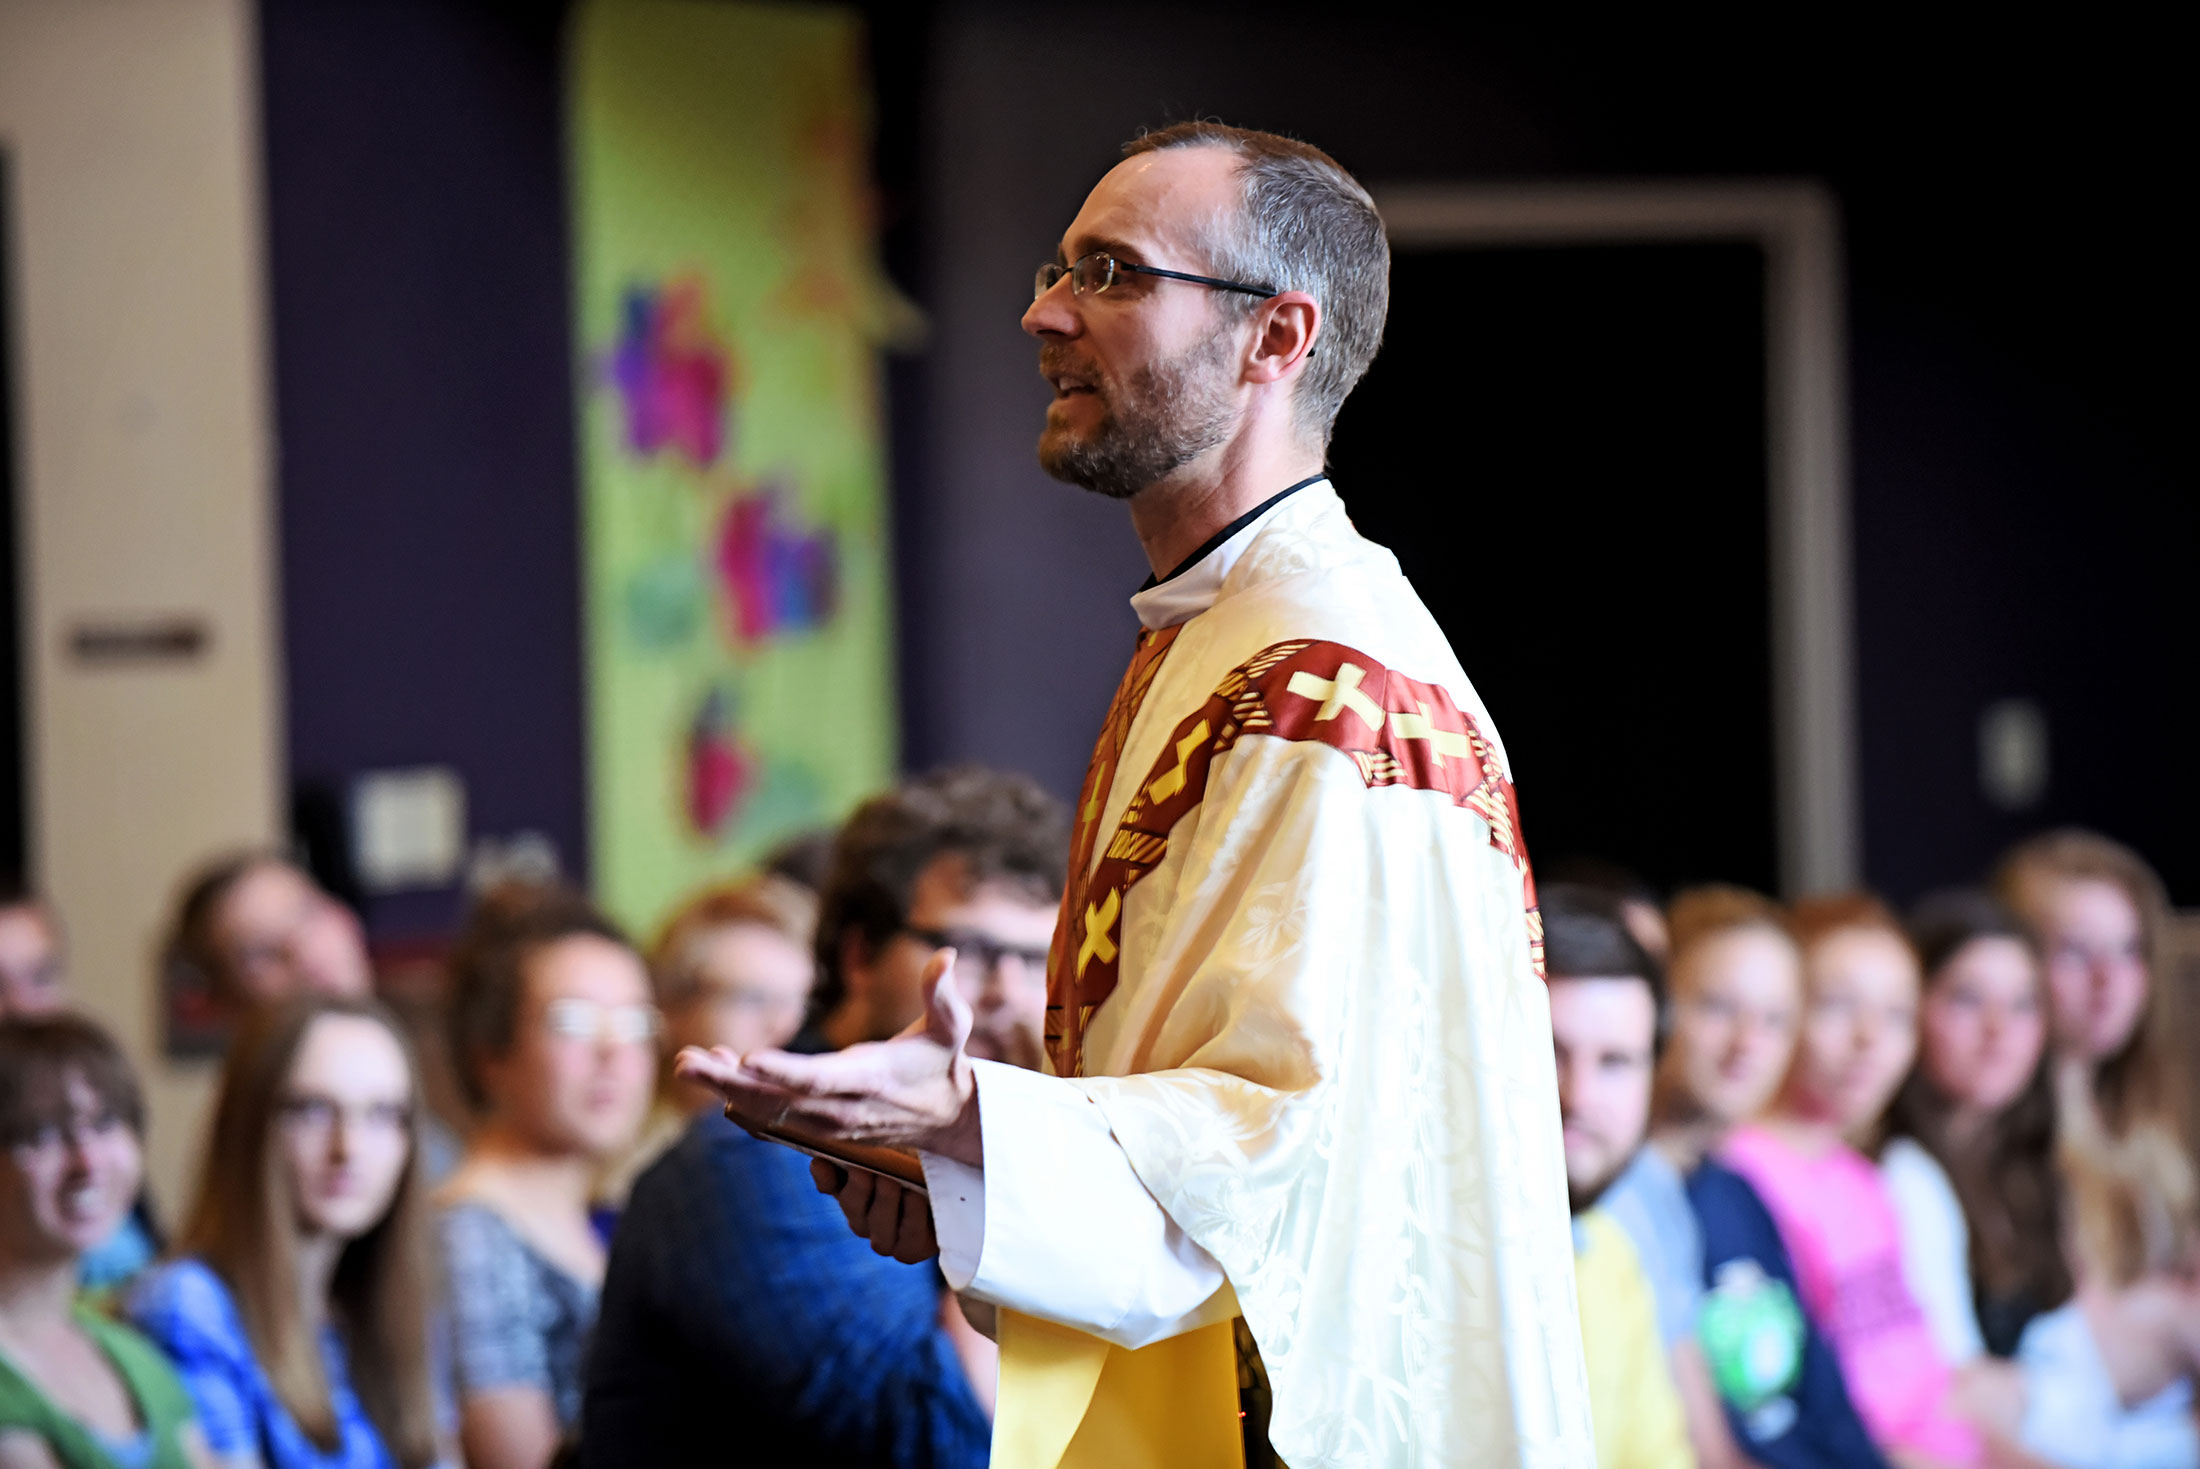 Fr. Marc Lenneman is Carroll's Chaplain and Director of Campus Ministry.